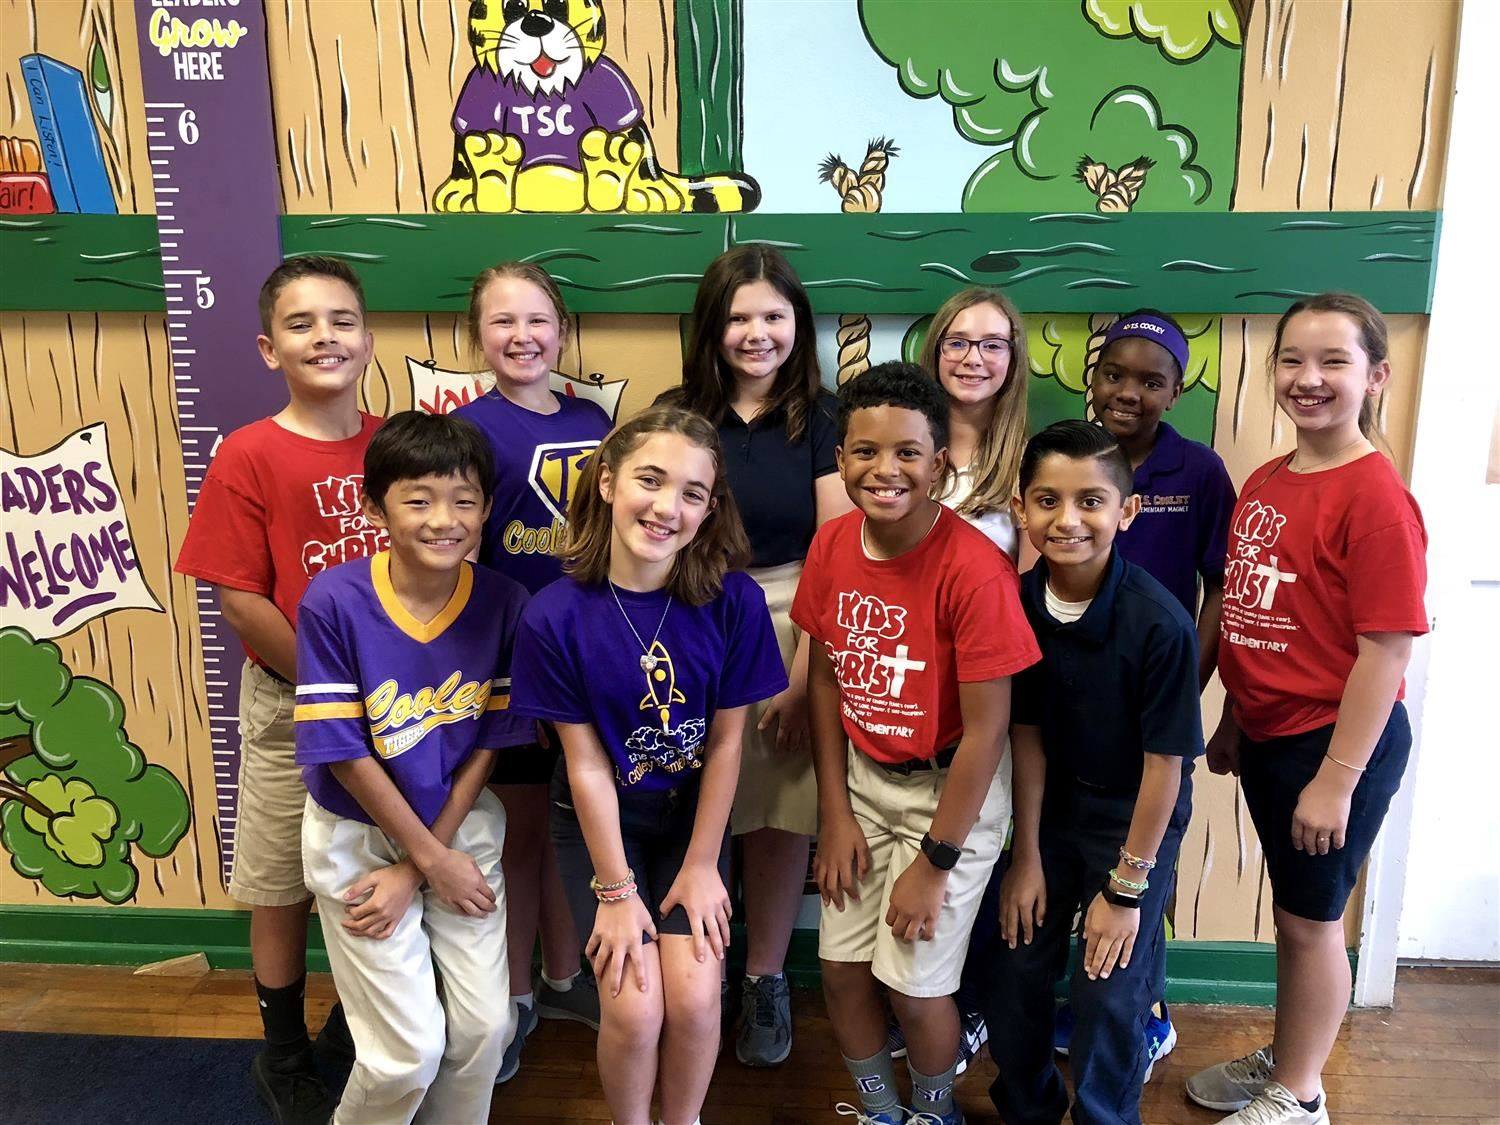 T. S. Cooley Student of the Year Nominees